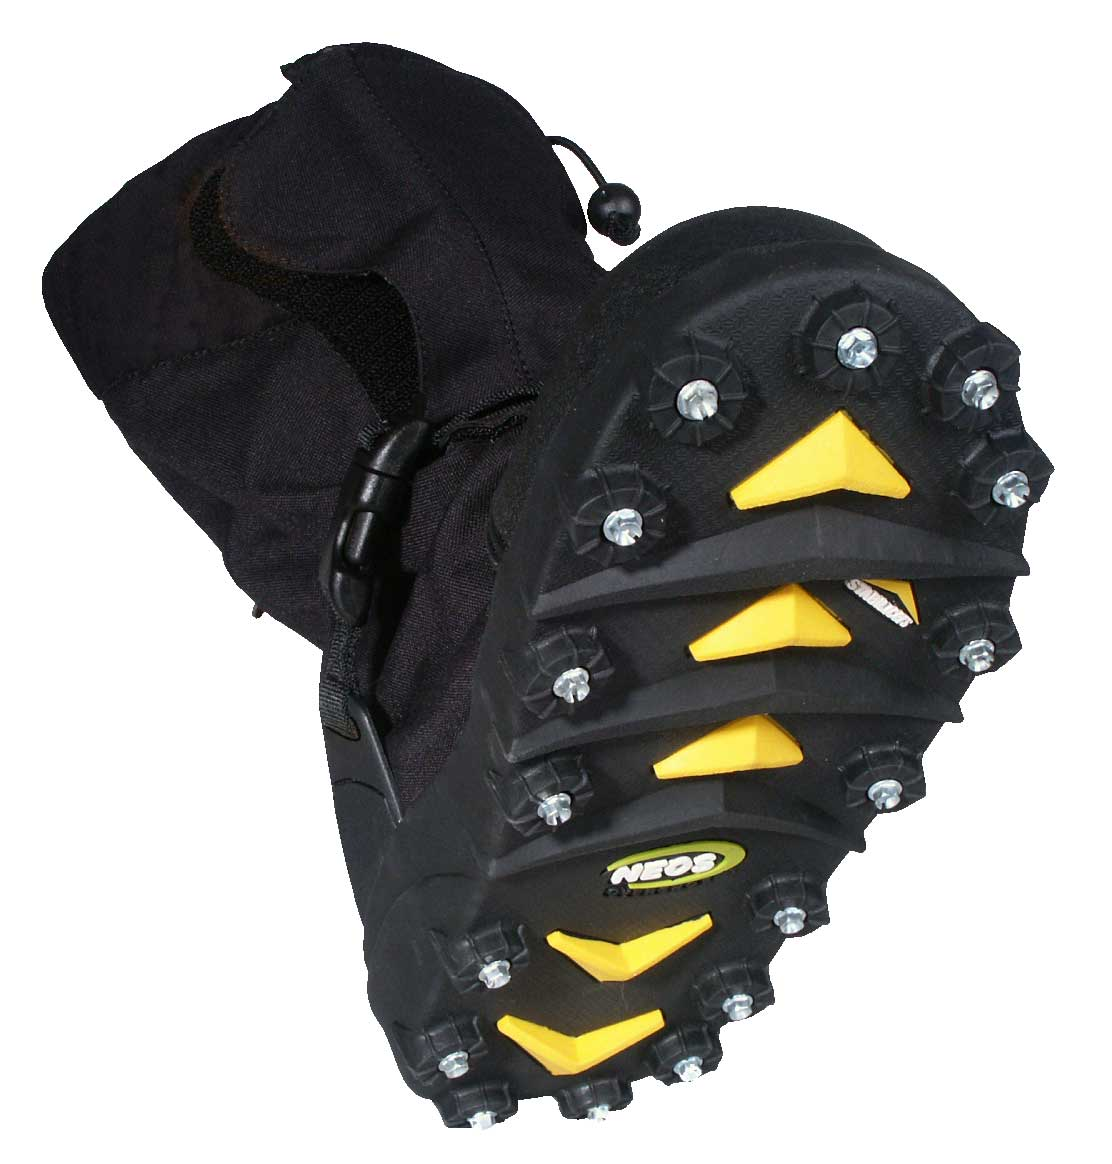 STABILicers Overshoe w/ Cleats, Medium.Men's Sizes 7.5 - 9